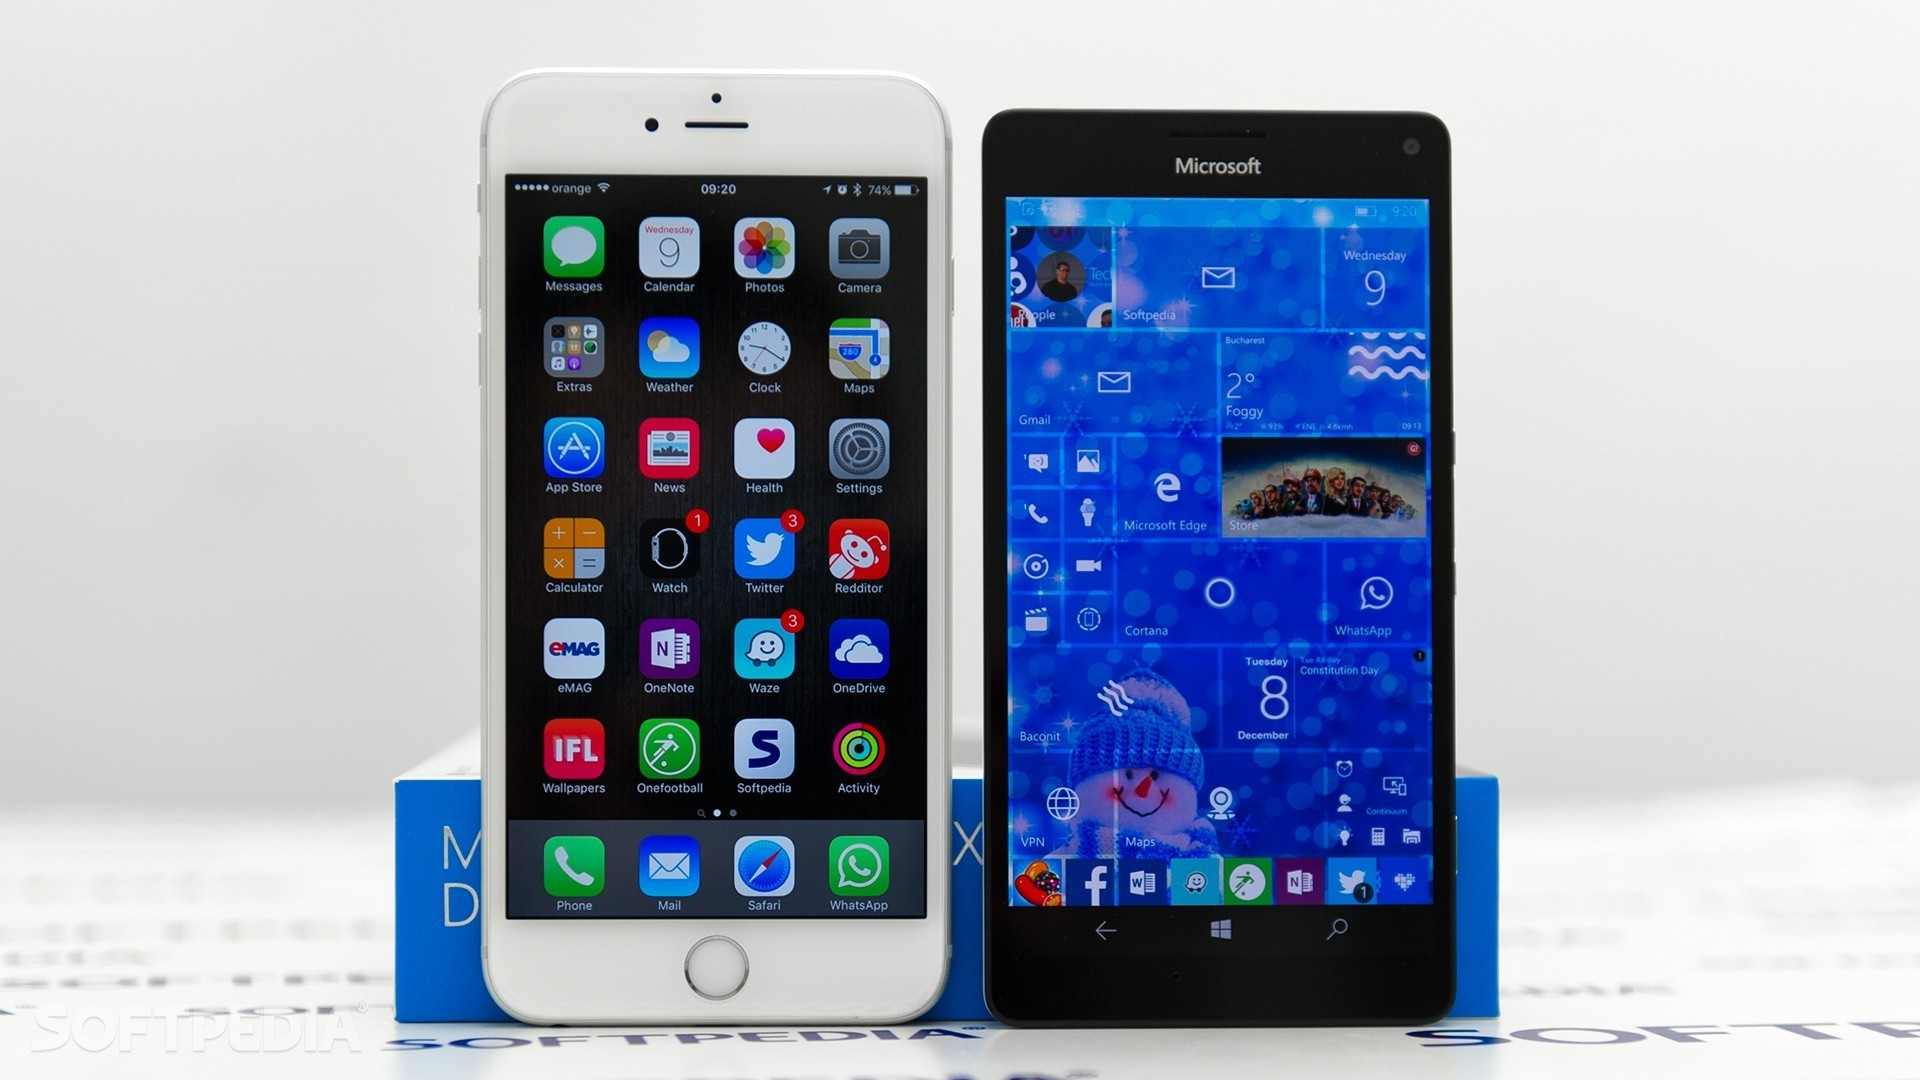 Apple's iPhone 6s Plus and the Lumia 950 XL …